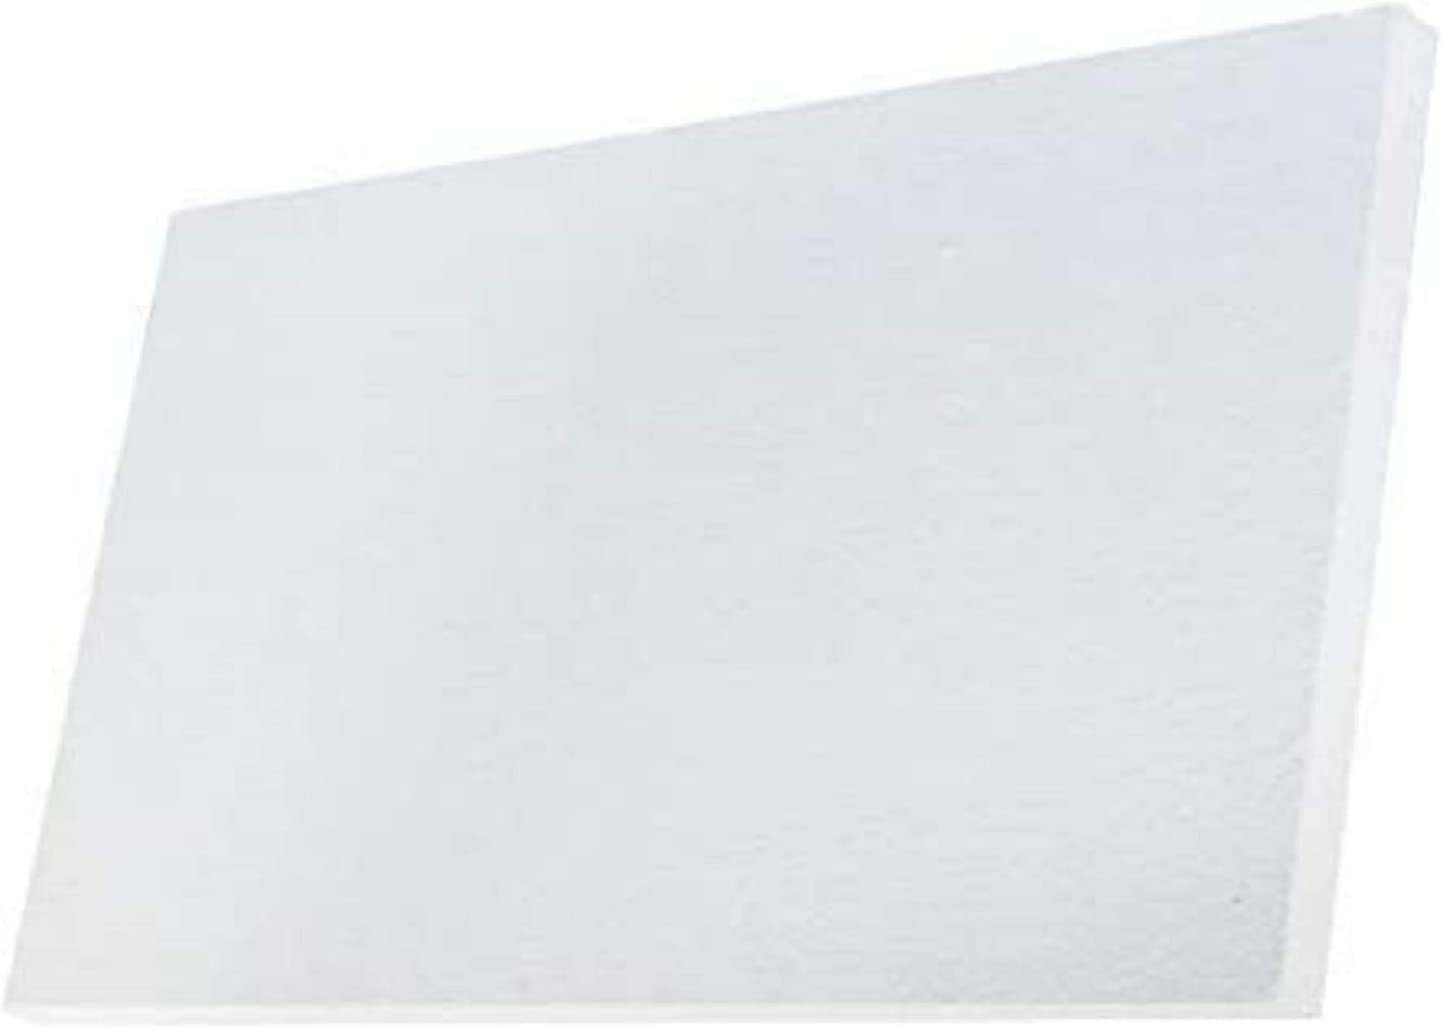 Simond Store Ceramic Fiber Insulation Board, 2300F, 0.47 Inch X 18 Inch X 24 Inch, Ceramic Thermal Insulation Board for Wood Stoves Fireplaces Furnaces Forges Kiln Pizza Oven